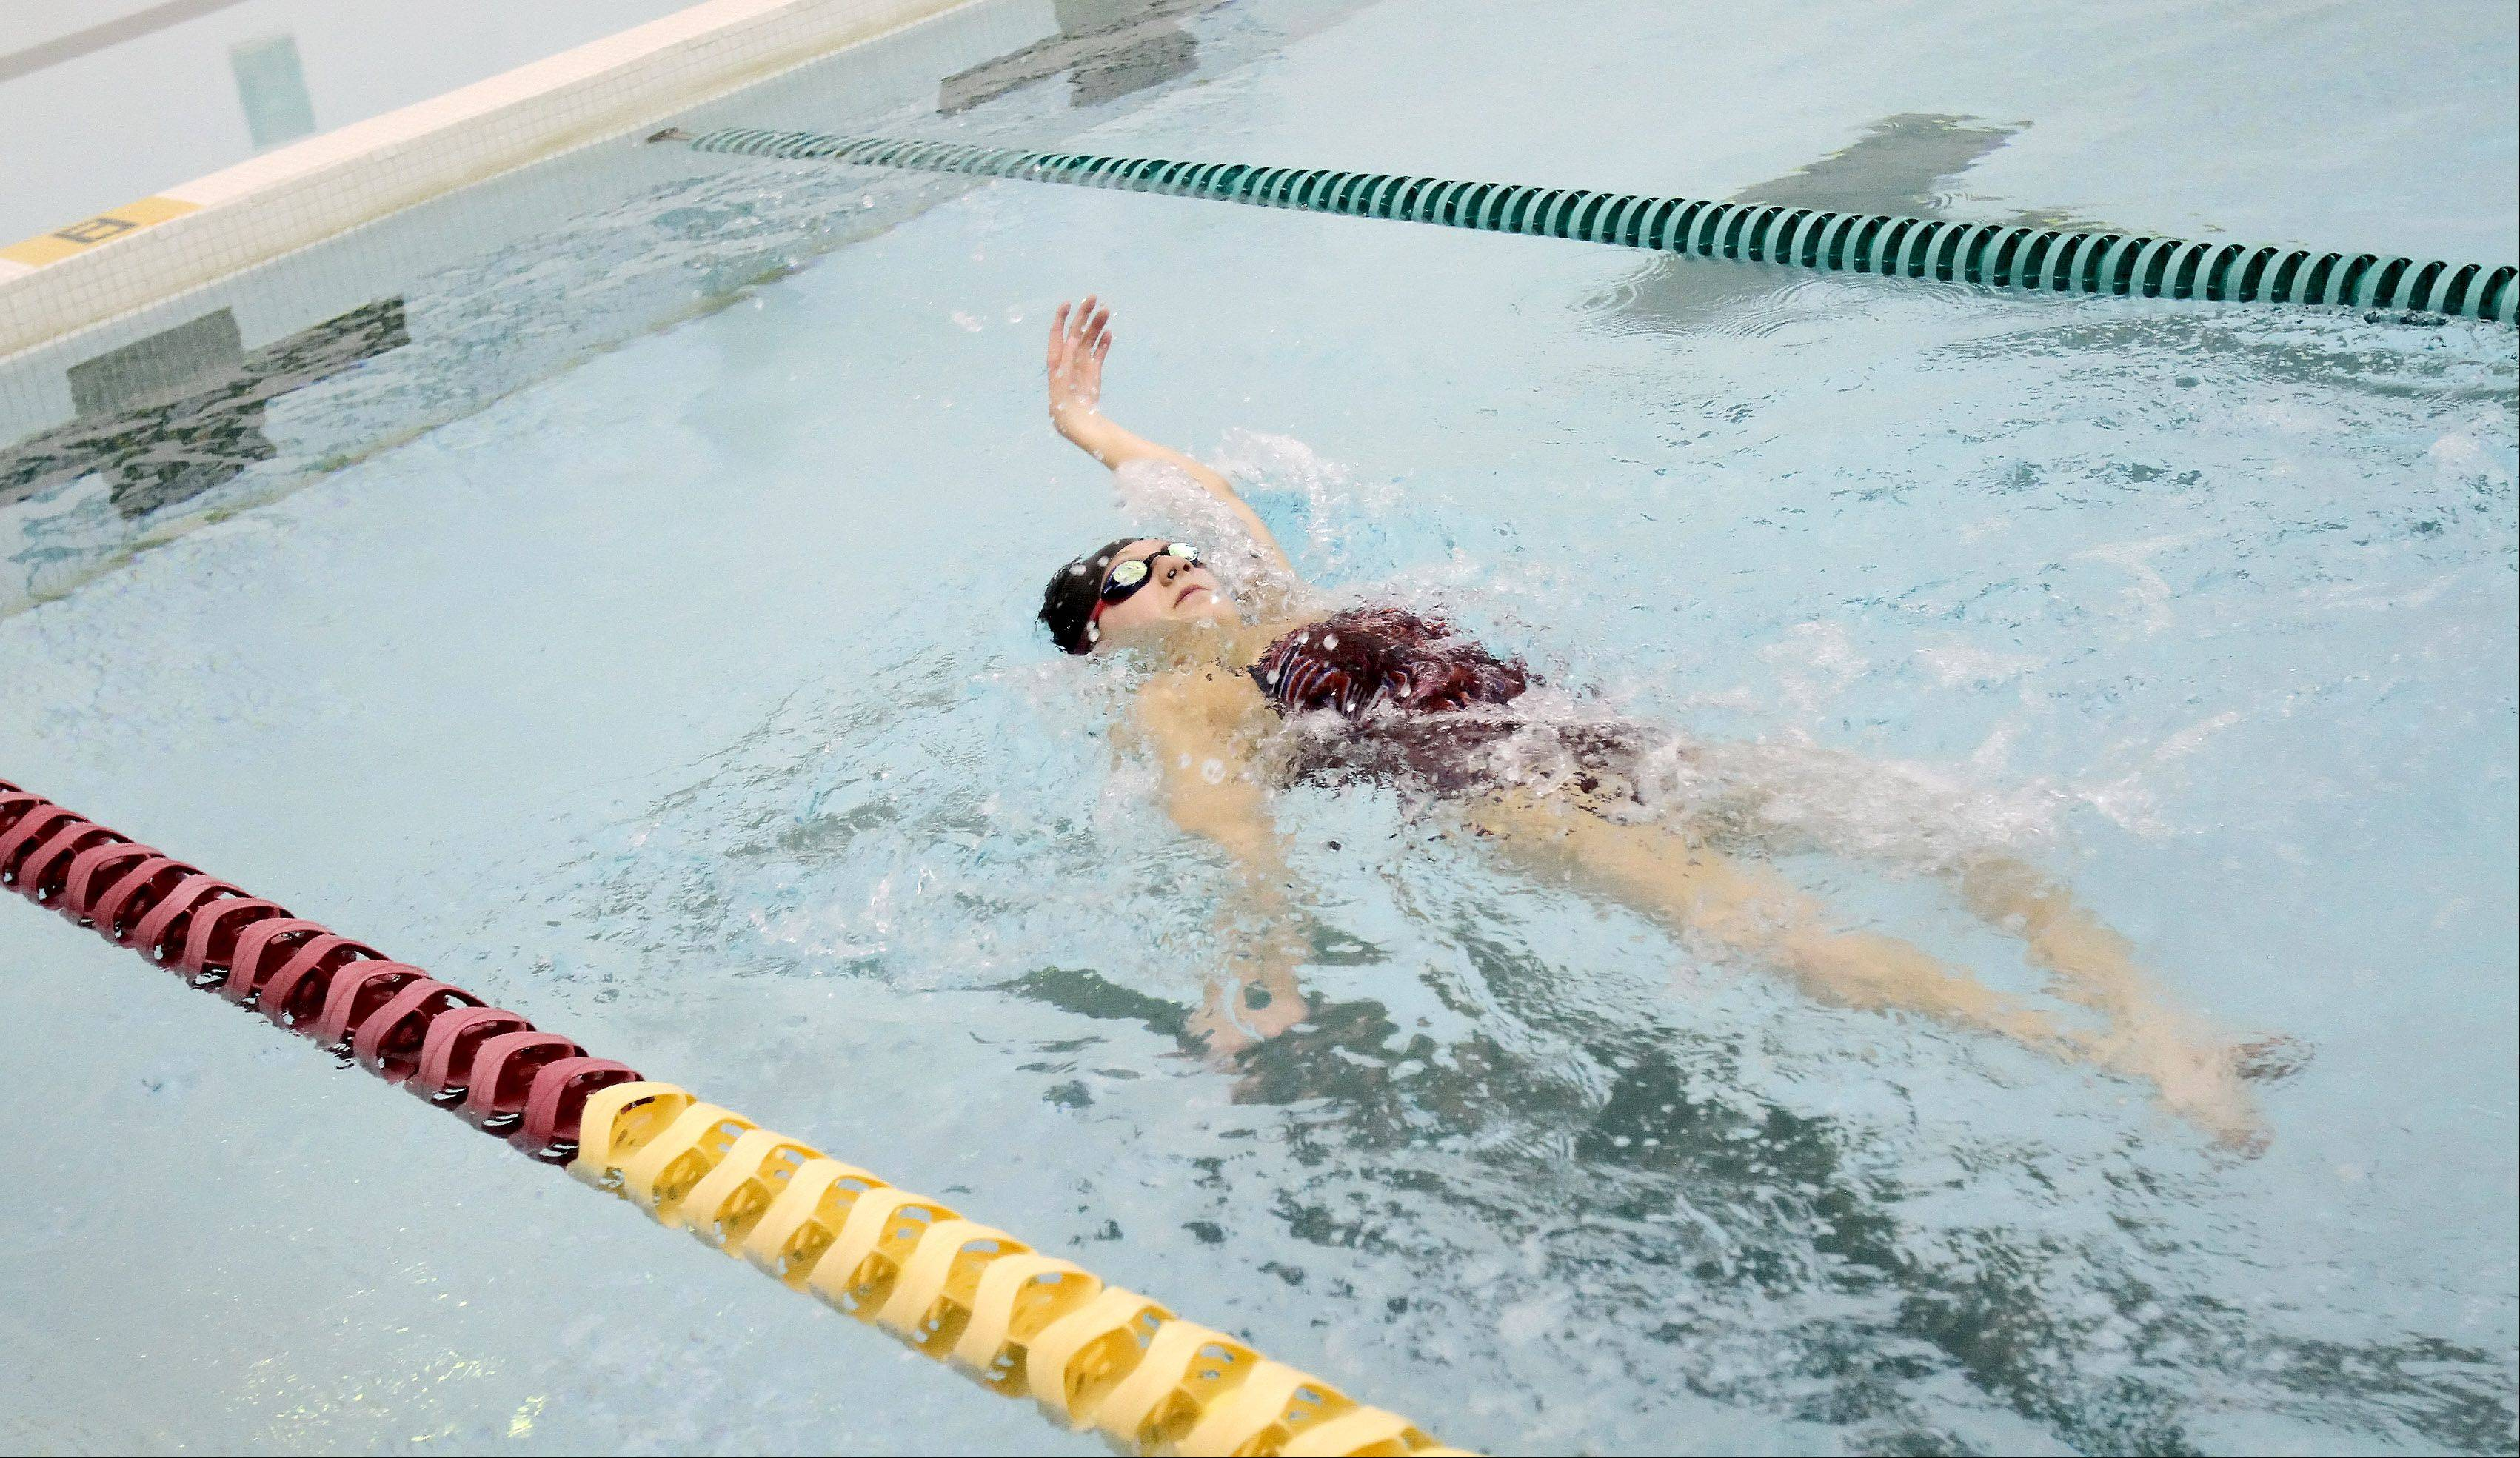 Alyssa Gialamas of Naperville won a bronze medal as part of a 200-meter medley relay team at the International Paralympic Committee World Championships in Montreal. She's training in hopes of medaling in the next Paralympics in 2016 in Rio de Janeiro.